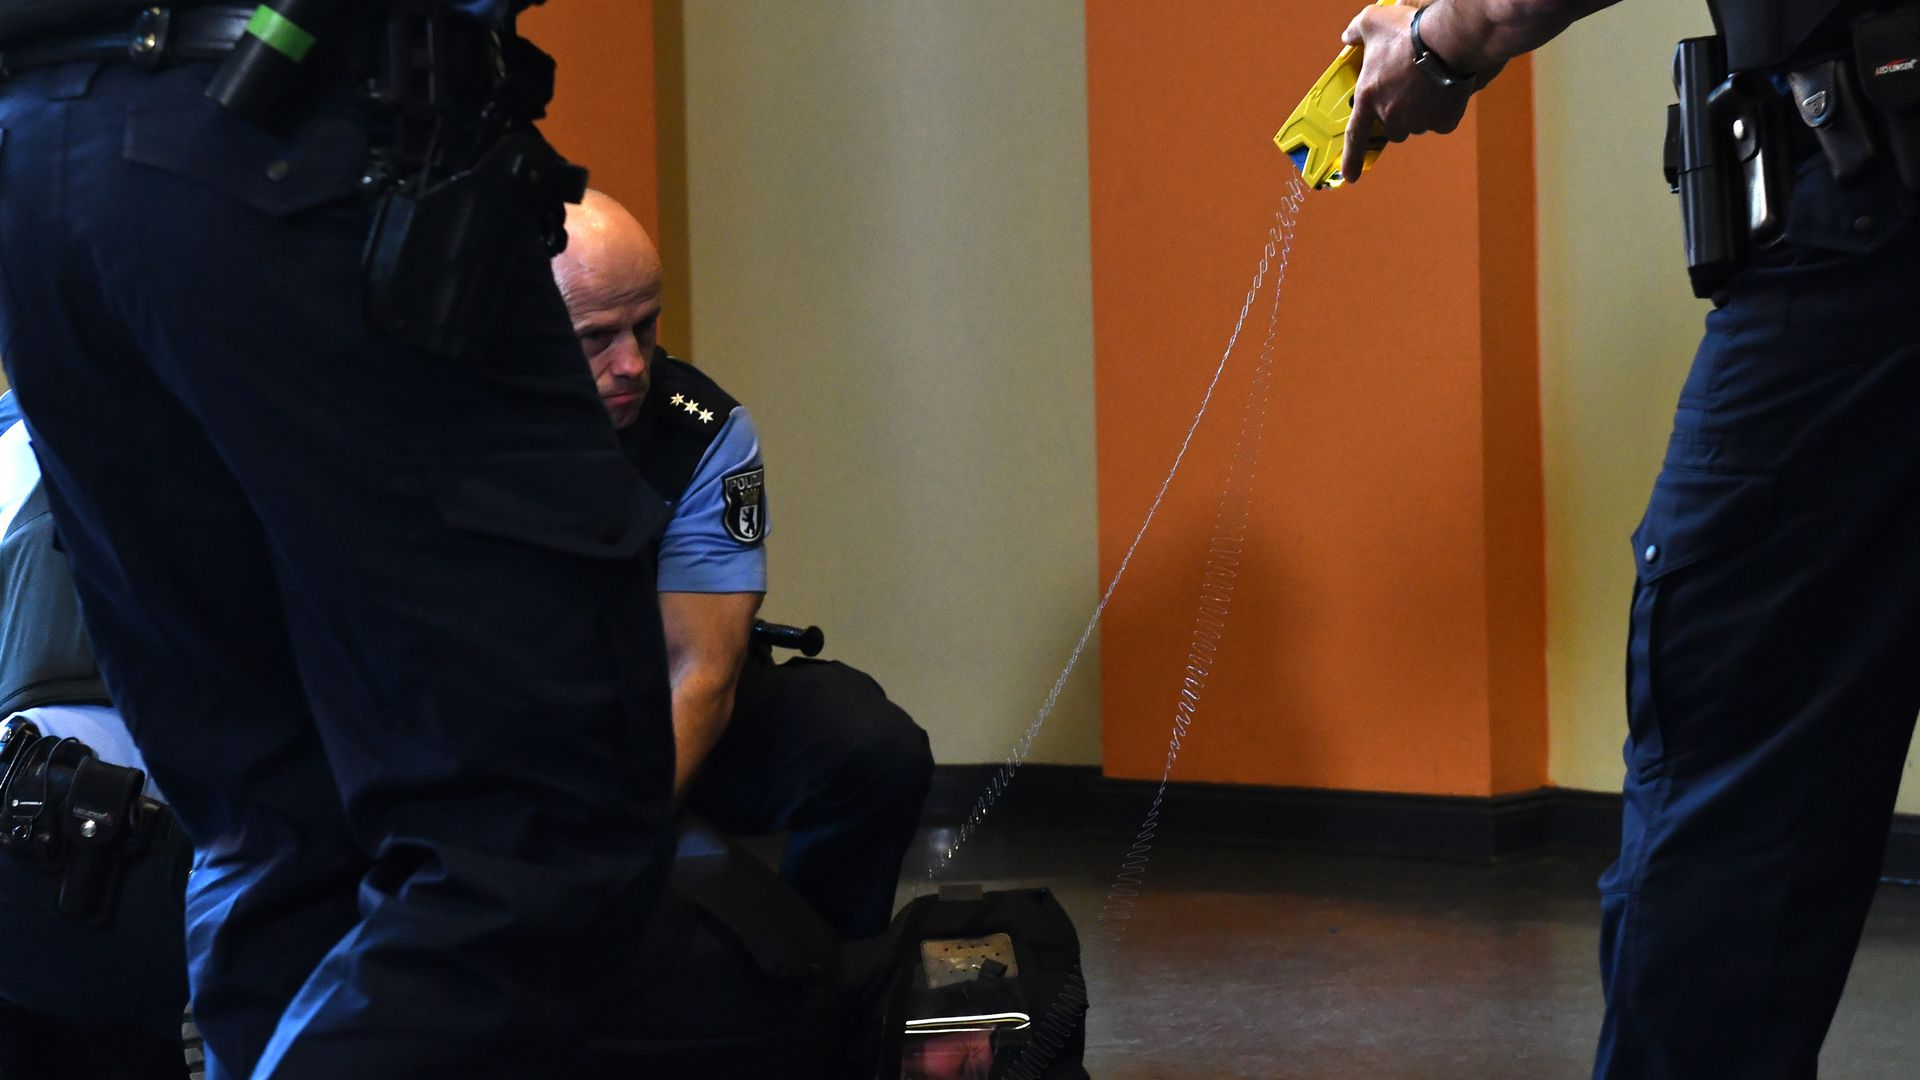 A police officer demonstrates how to use a Taser.